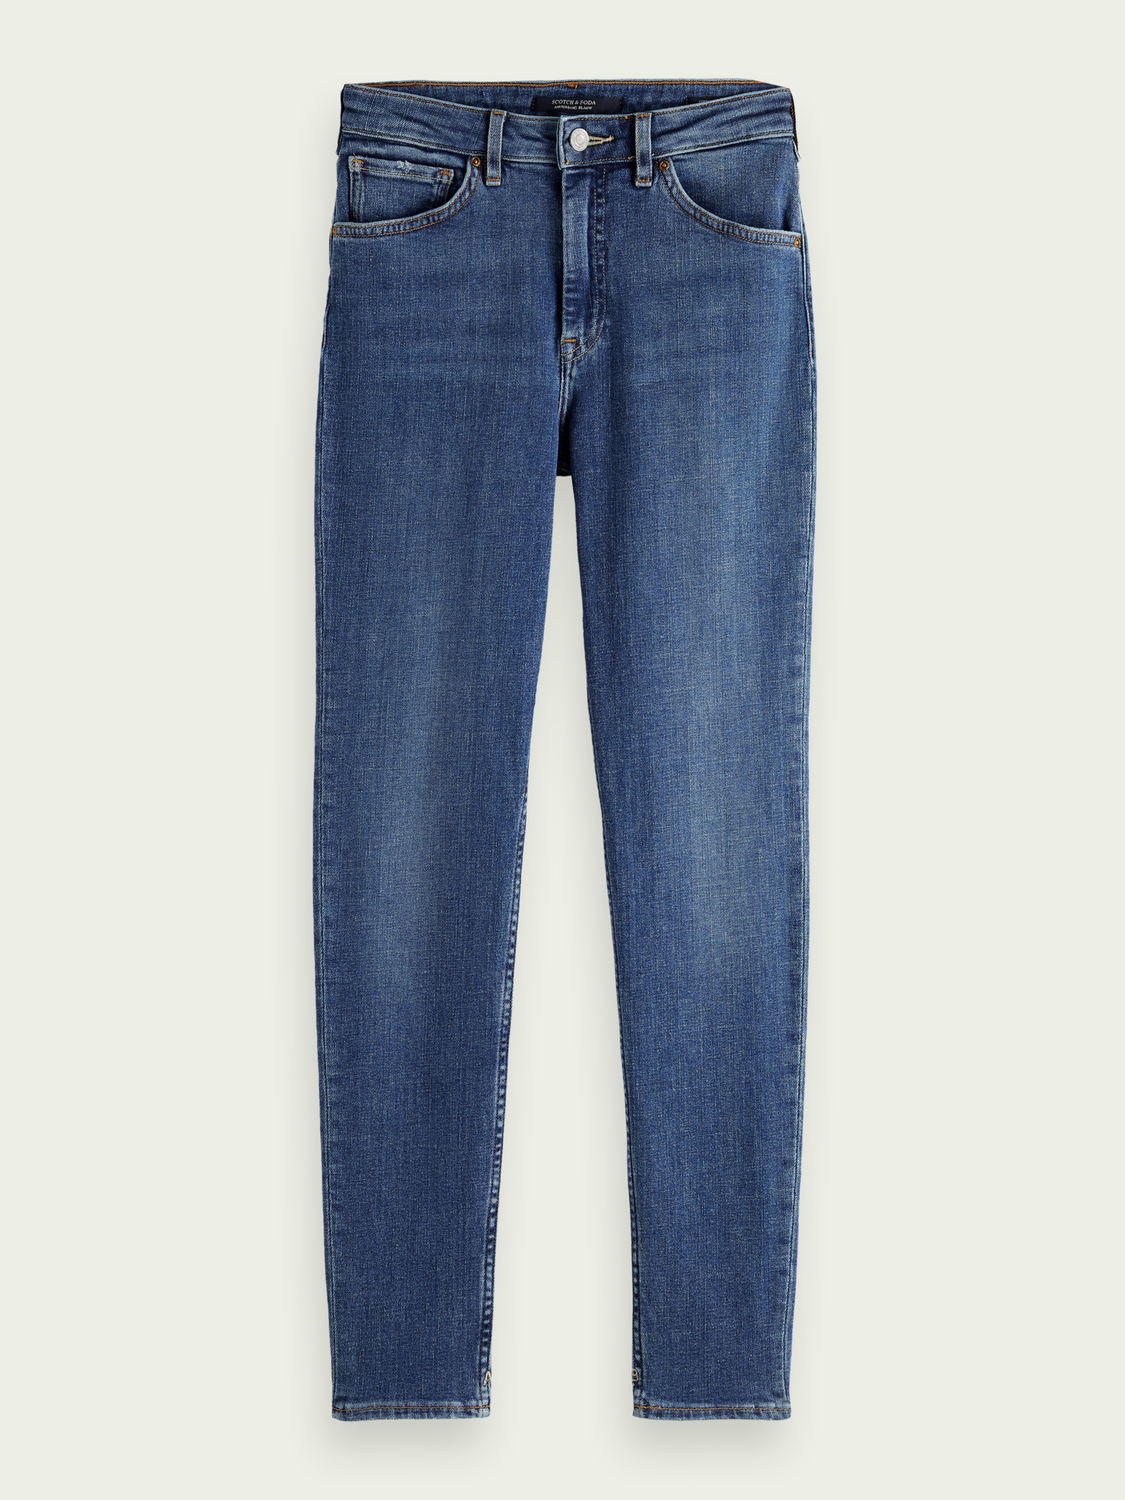 Women Haut distressed super stretch jeans - Time After Time